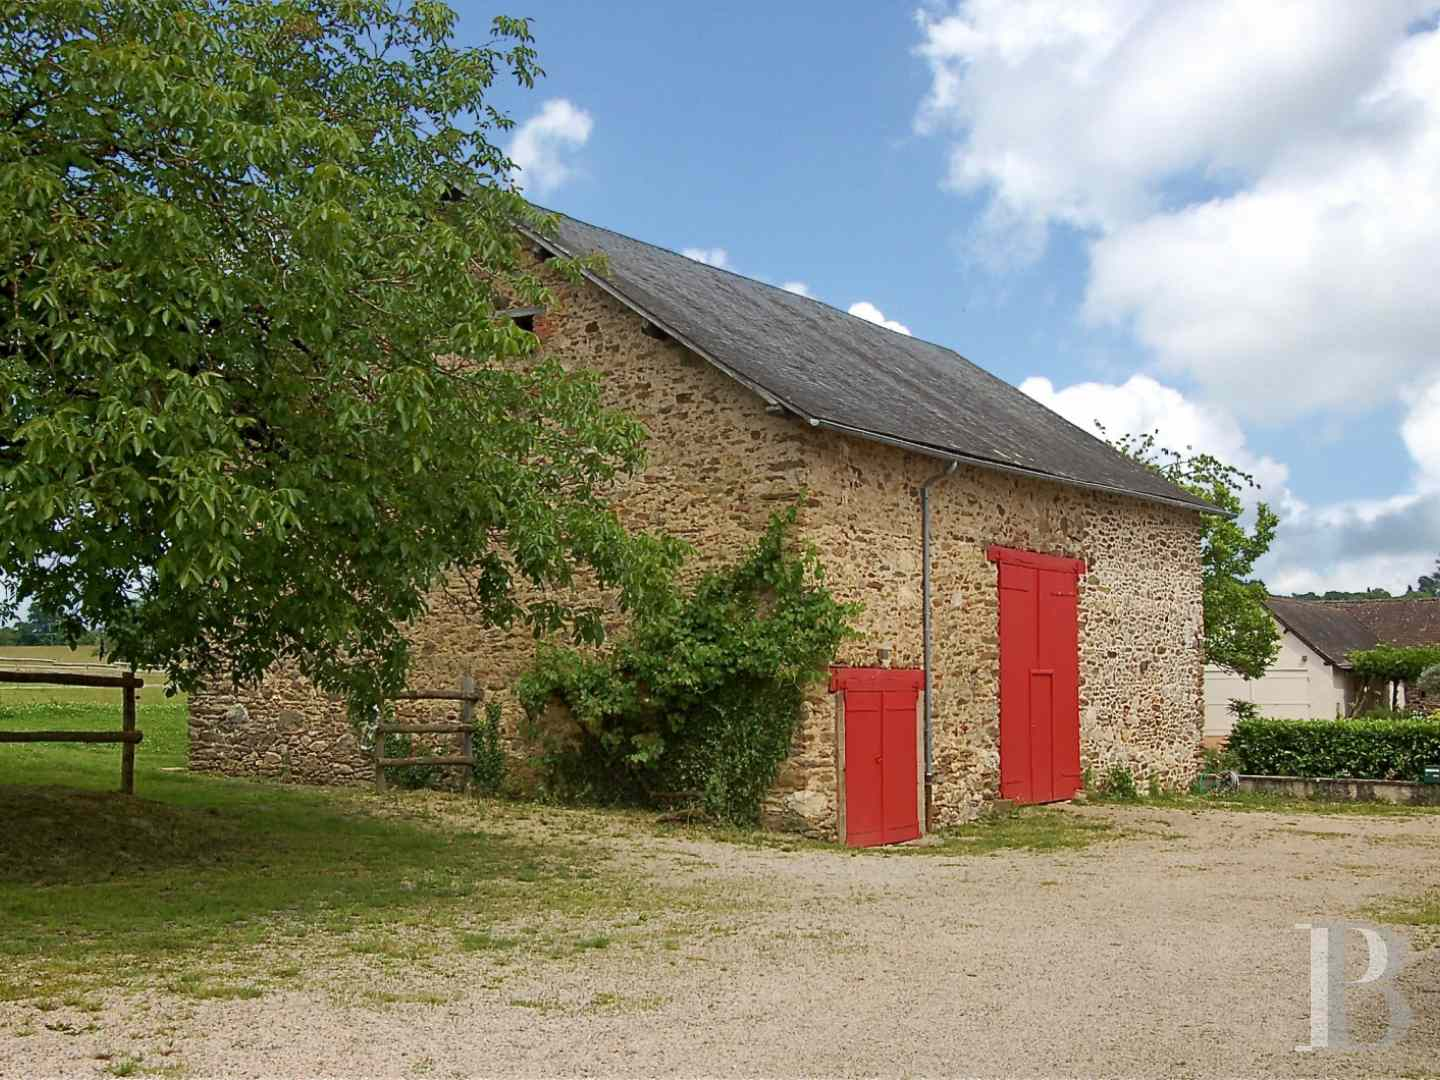 property for sale France limousin free lands - 14 zoom